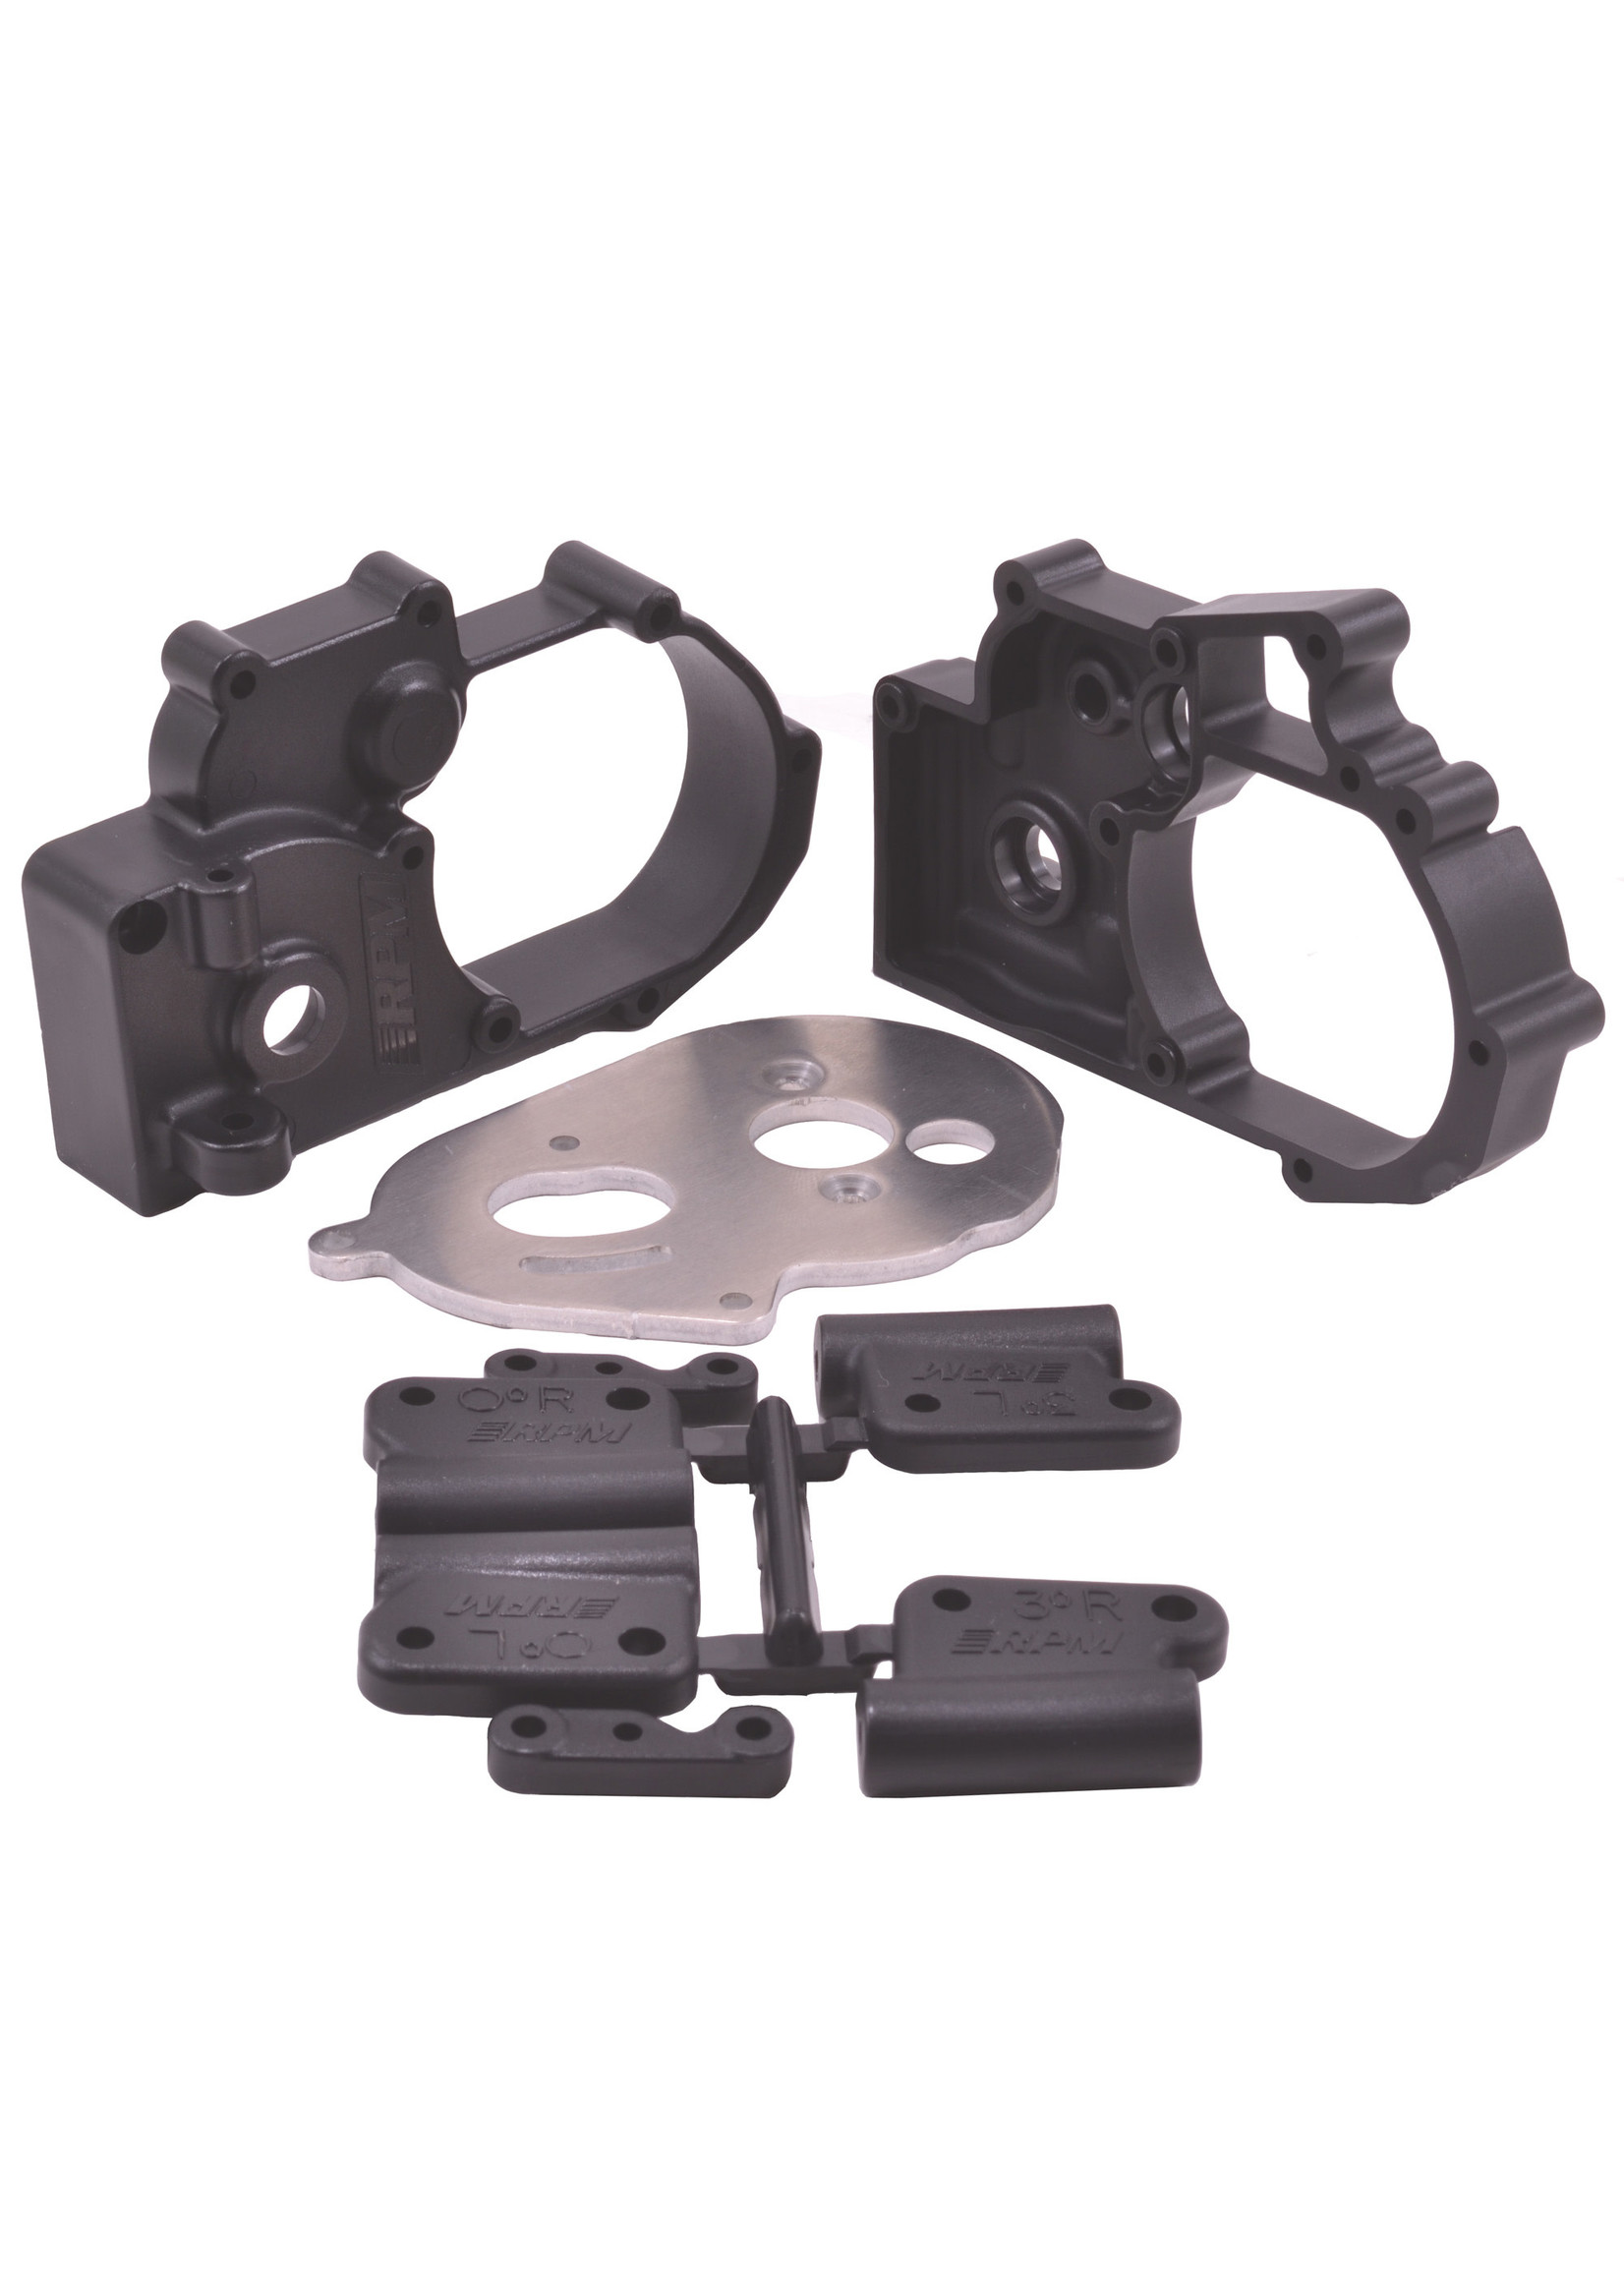 RPM RPM73612 RPM Black Gearbox Housing and Rear Mounts for Traxxas 2wd Vehicles